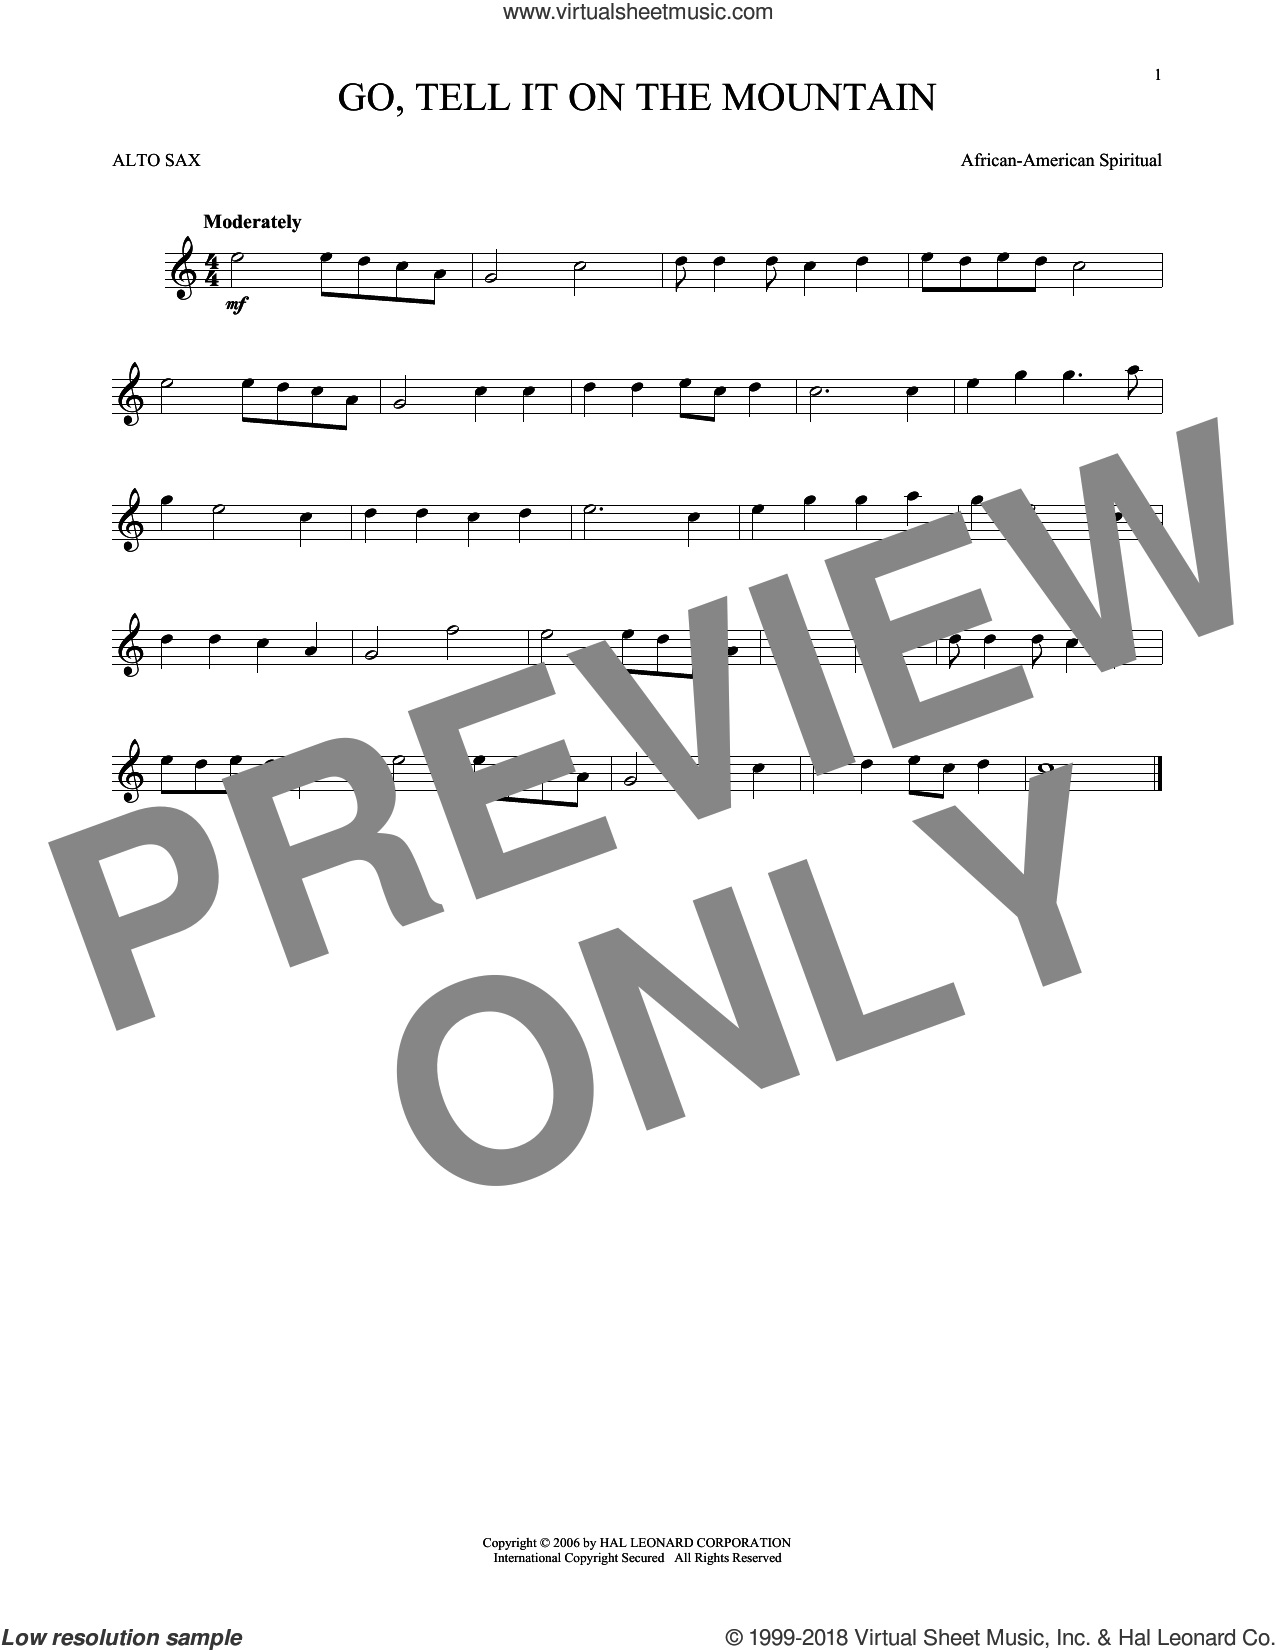 Go, Tell It On The Mountain sheet music for alto saxophone solo by John W. Work, Jr. and Miscellaneous, intermediate skill level